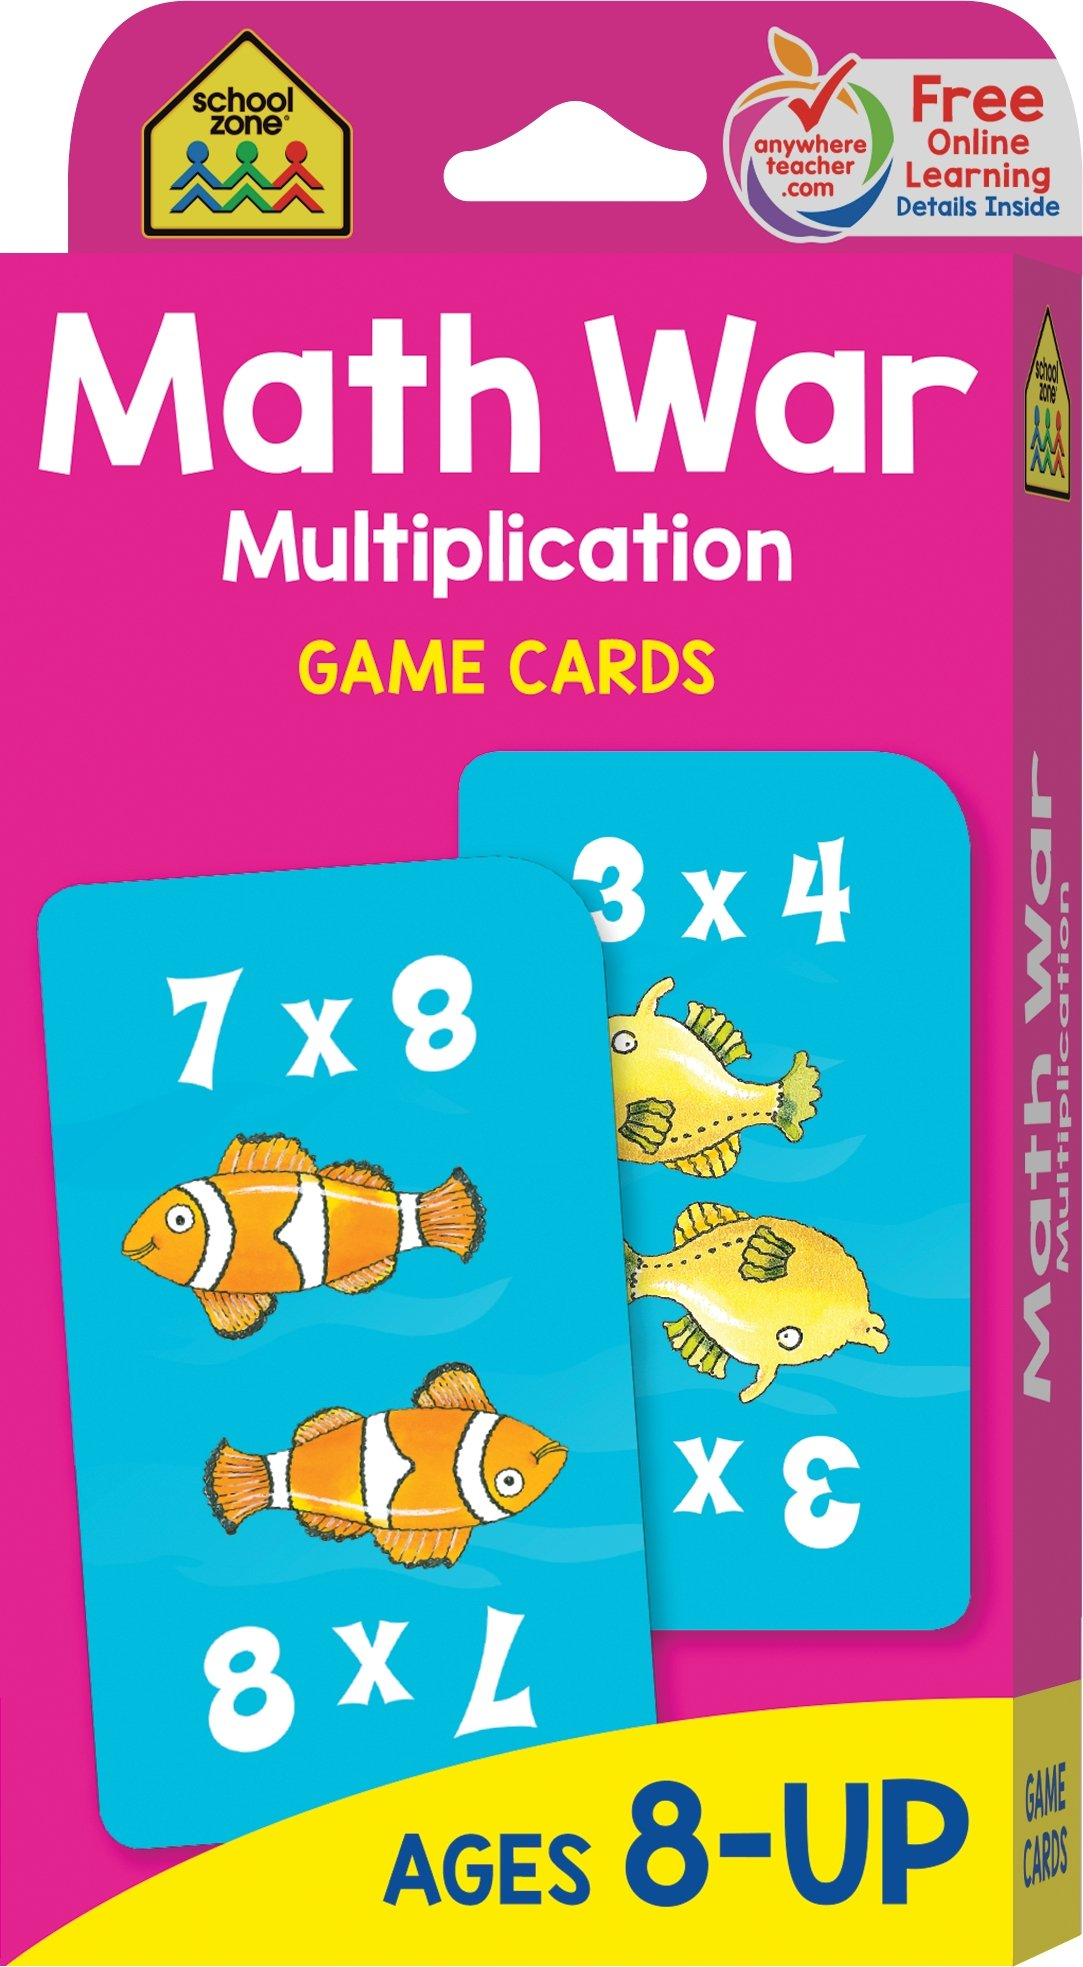 Multiplication War Game Cards, Ages 8-Up, math games, multiplication  tables, third grade math standards, playful learning: 9780887432873:  Amazon.com: Books